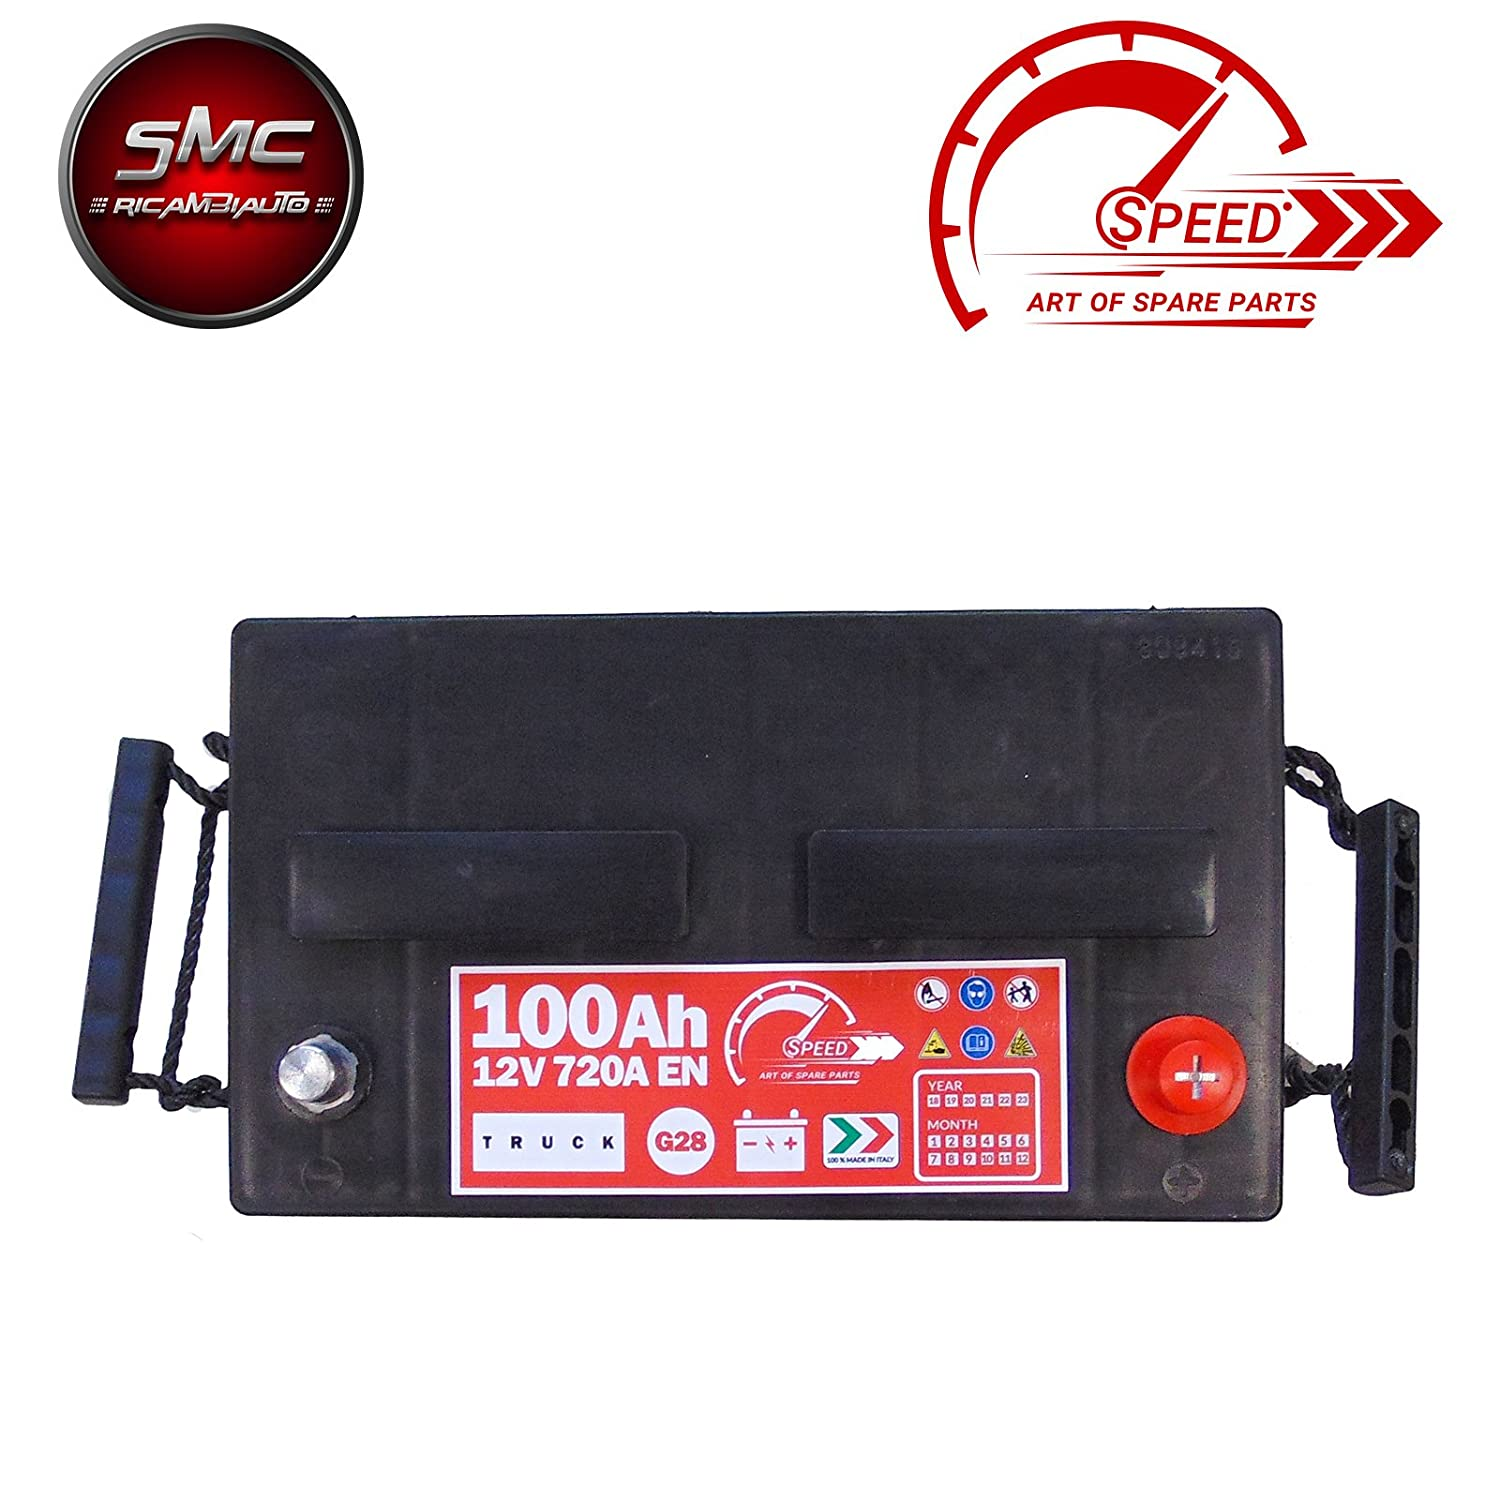 BATTERIA TRUCK ORIGINALE SPEED BY SMC G28100 12V 100AH 720A EN CON POLO POSITIVO A DESTRA